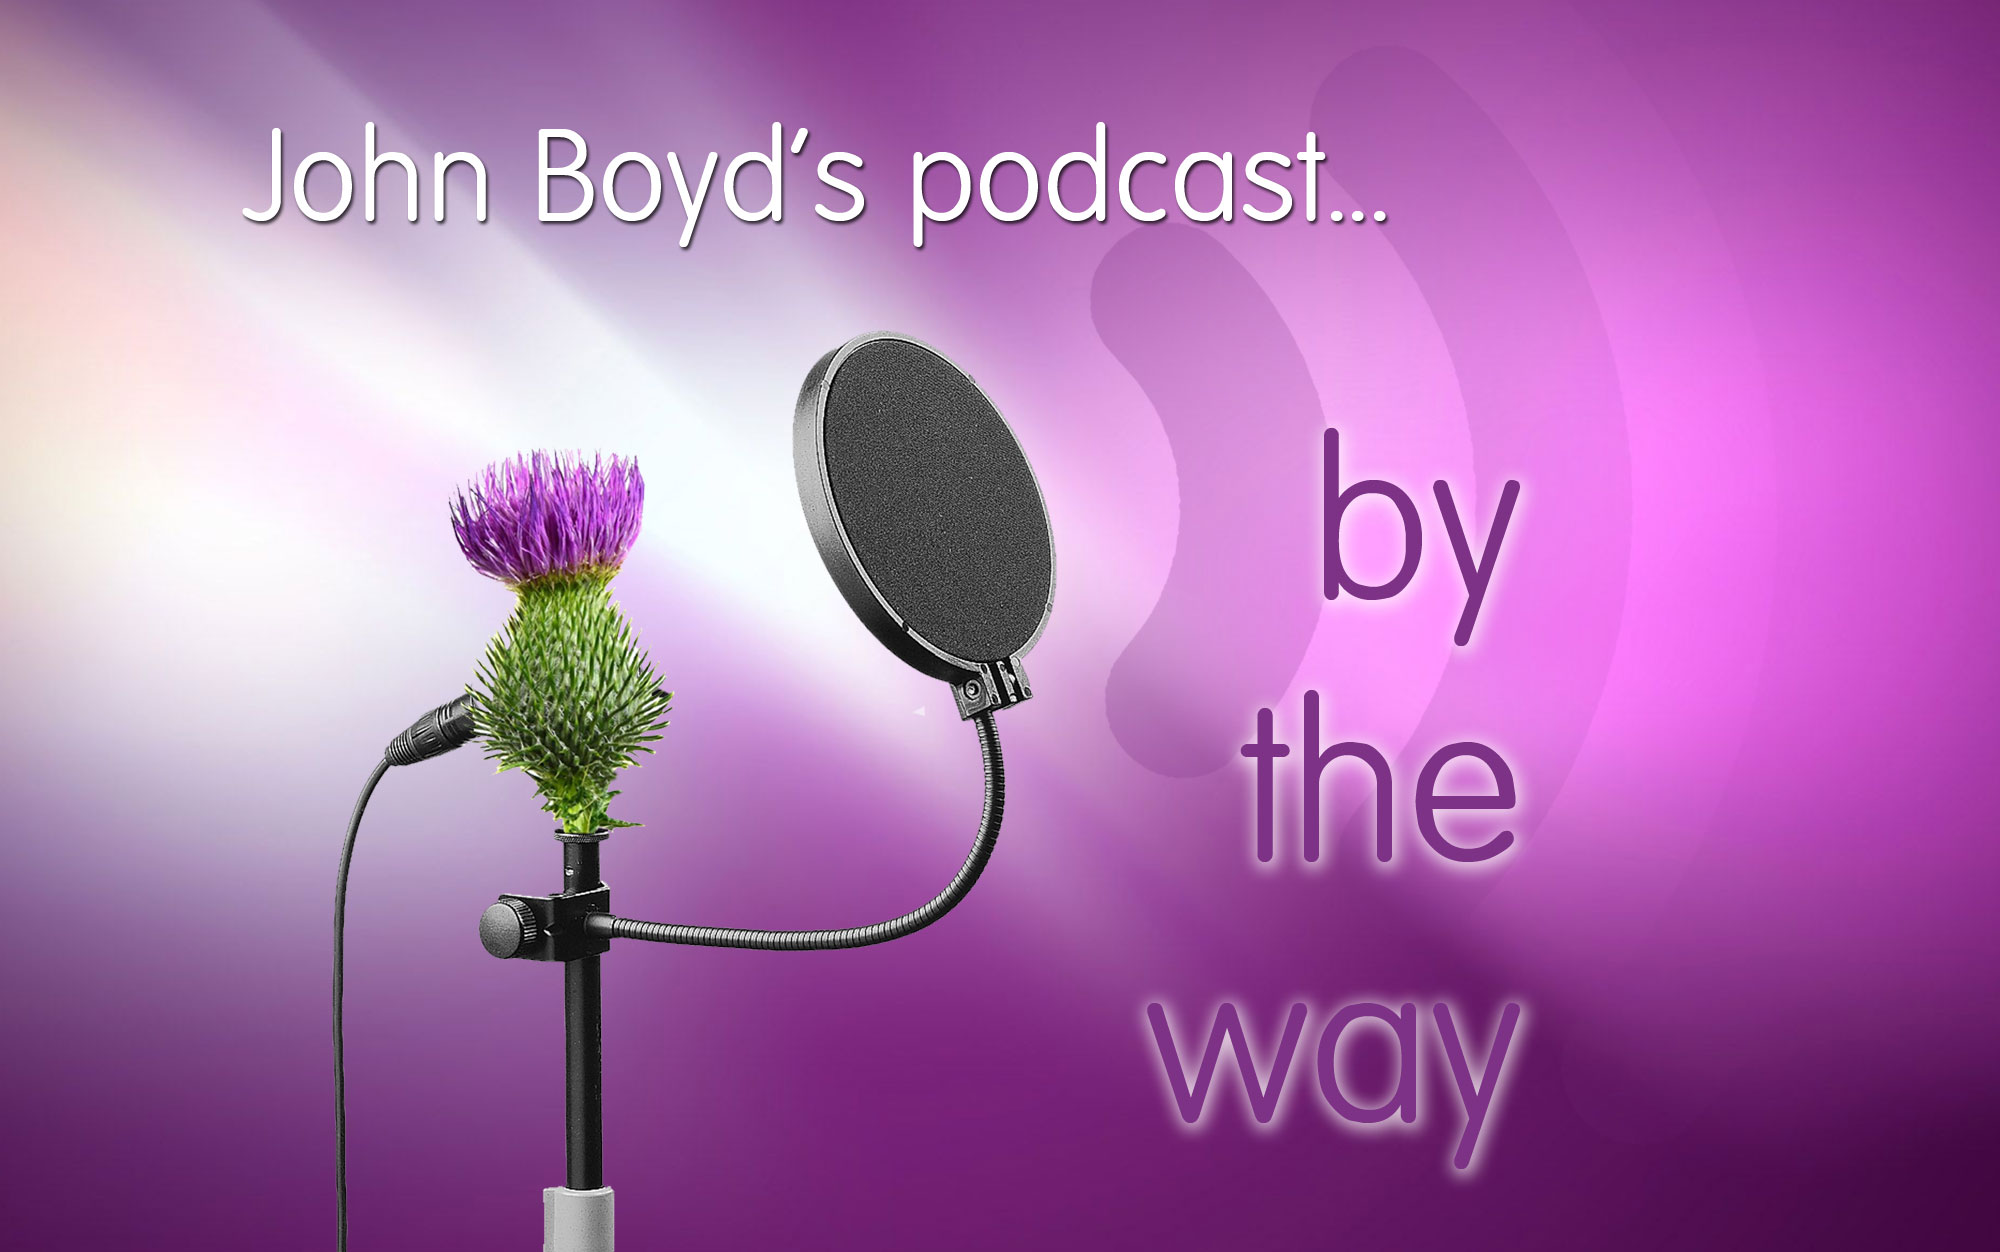 John Boyd's podcast by the way